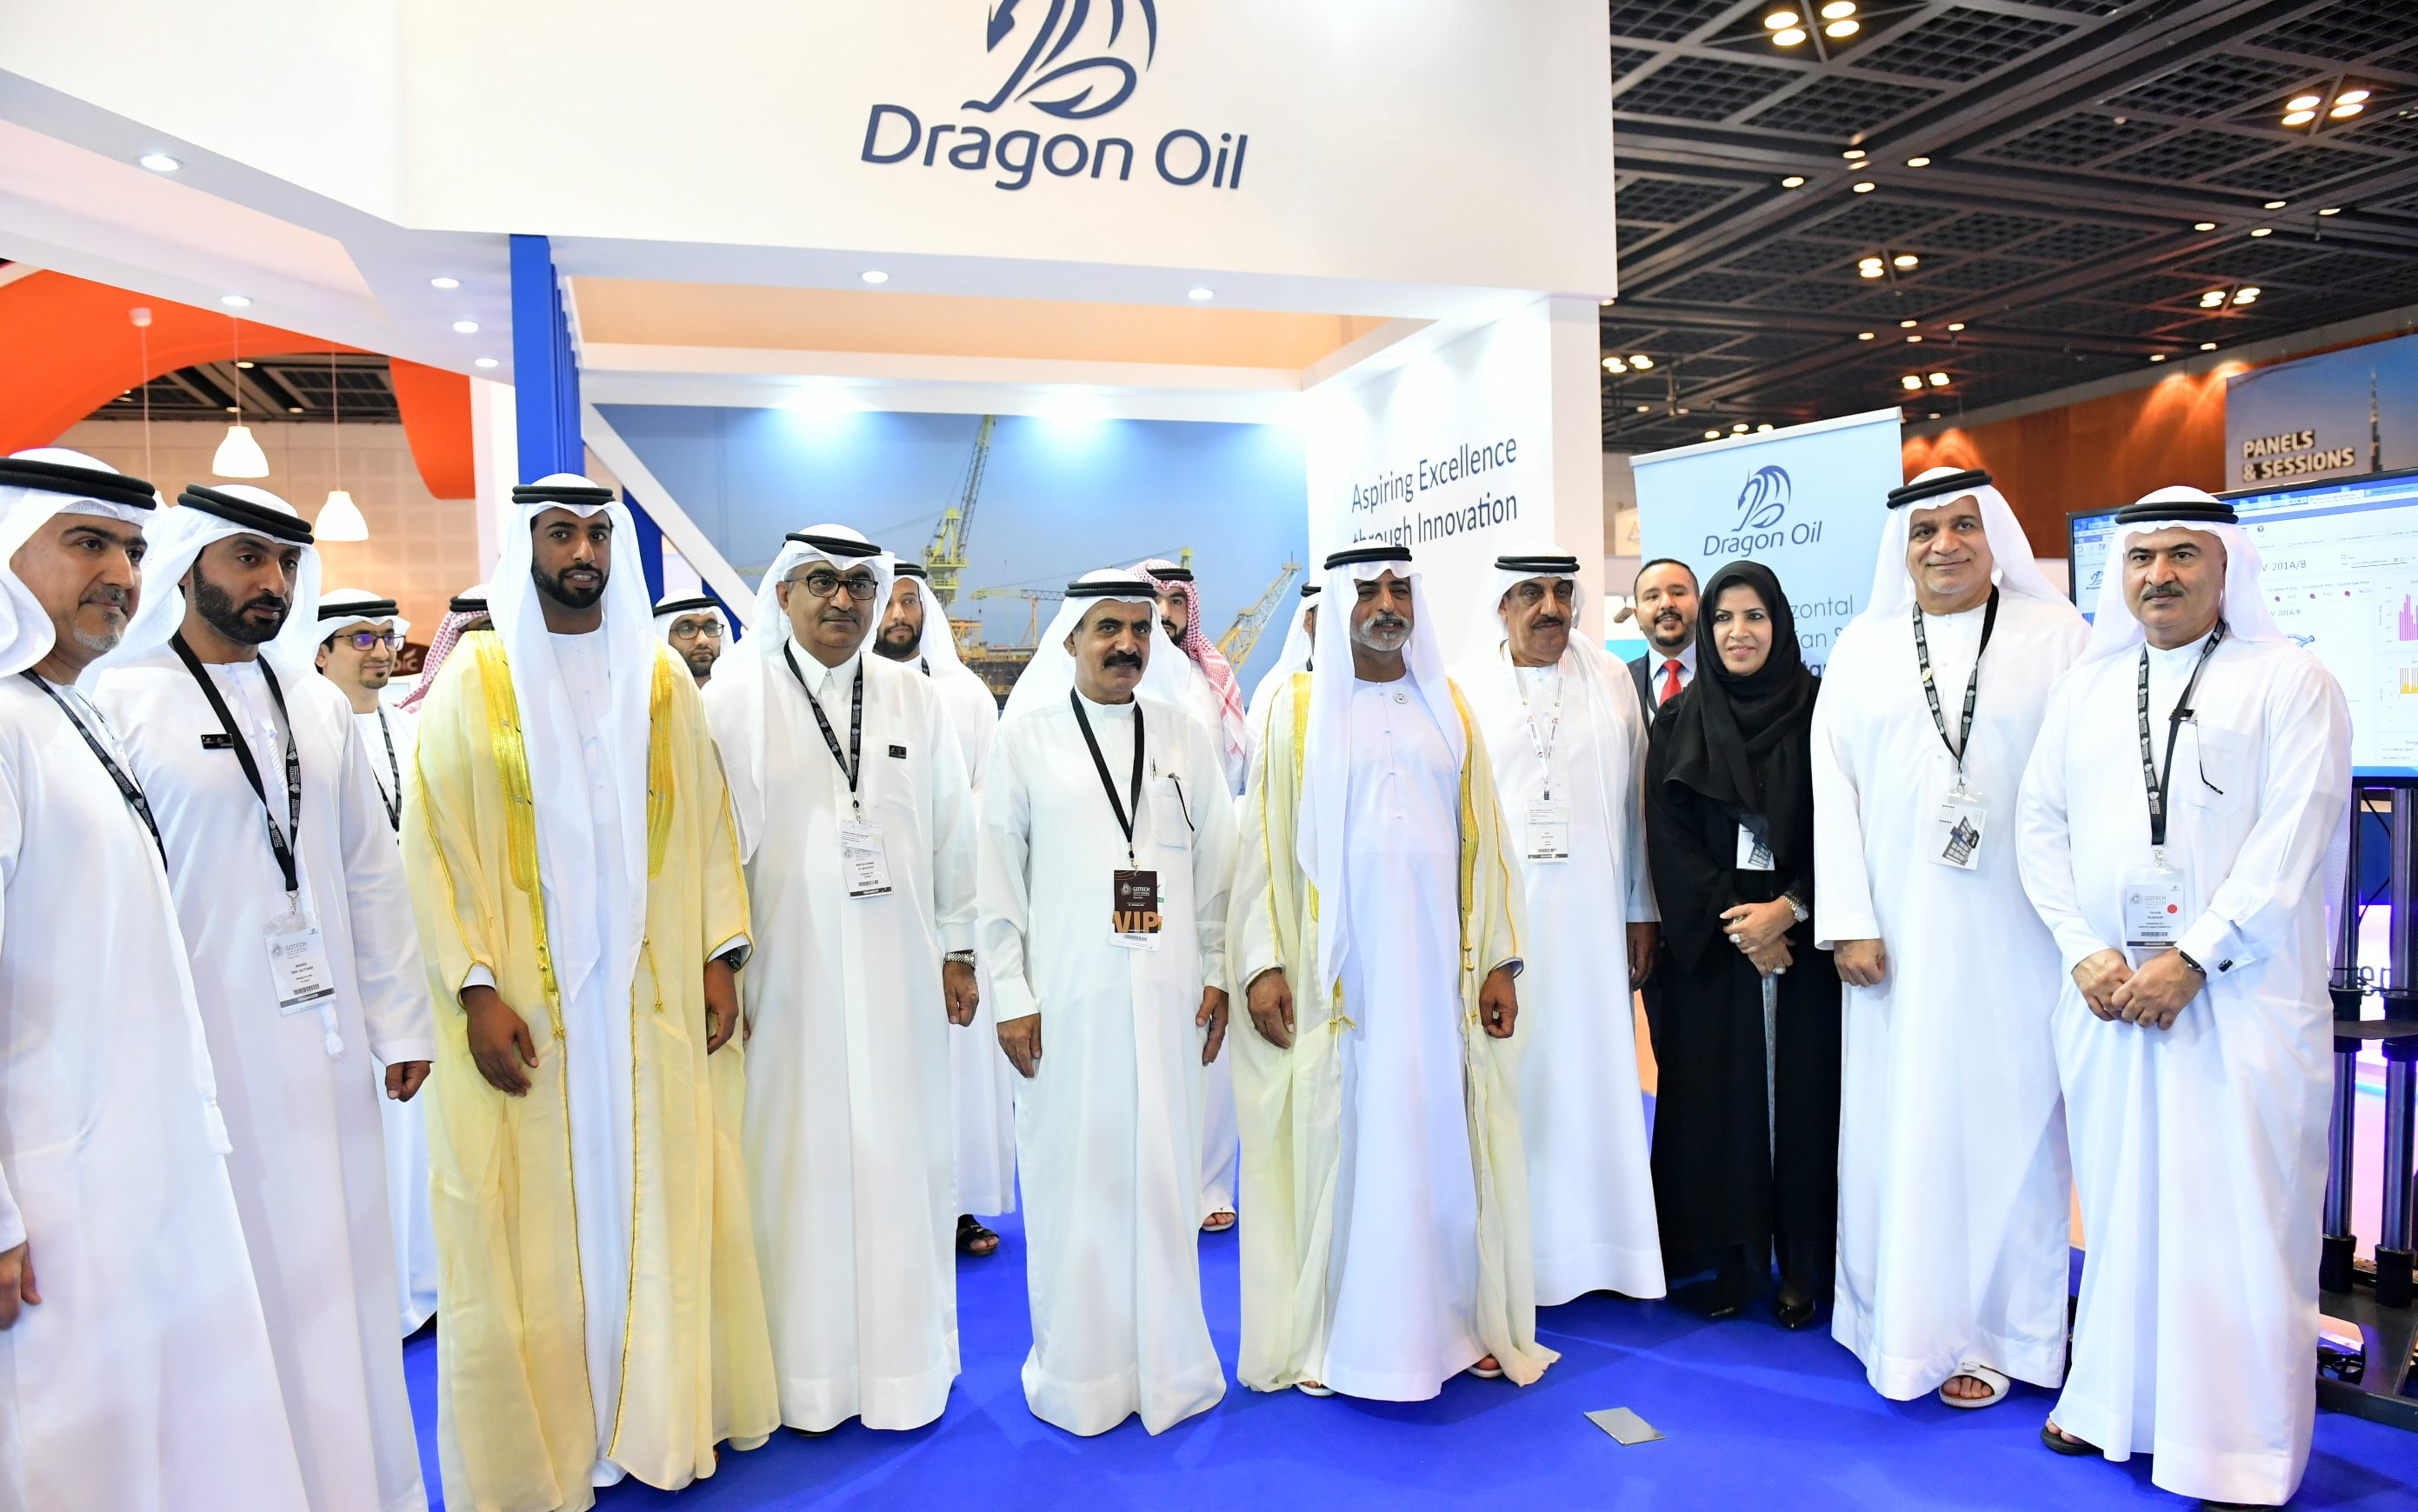 Ali Rashid Al Jarwan - Dragon Oil